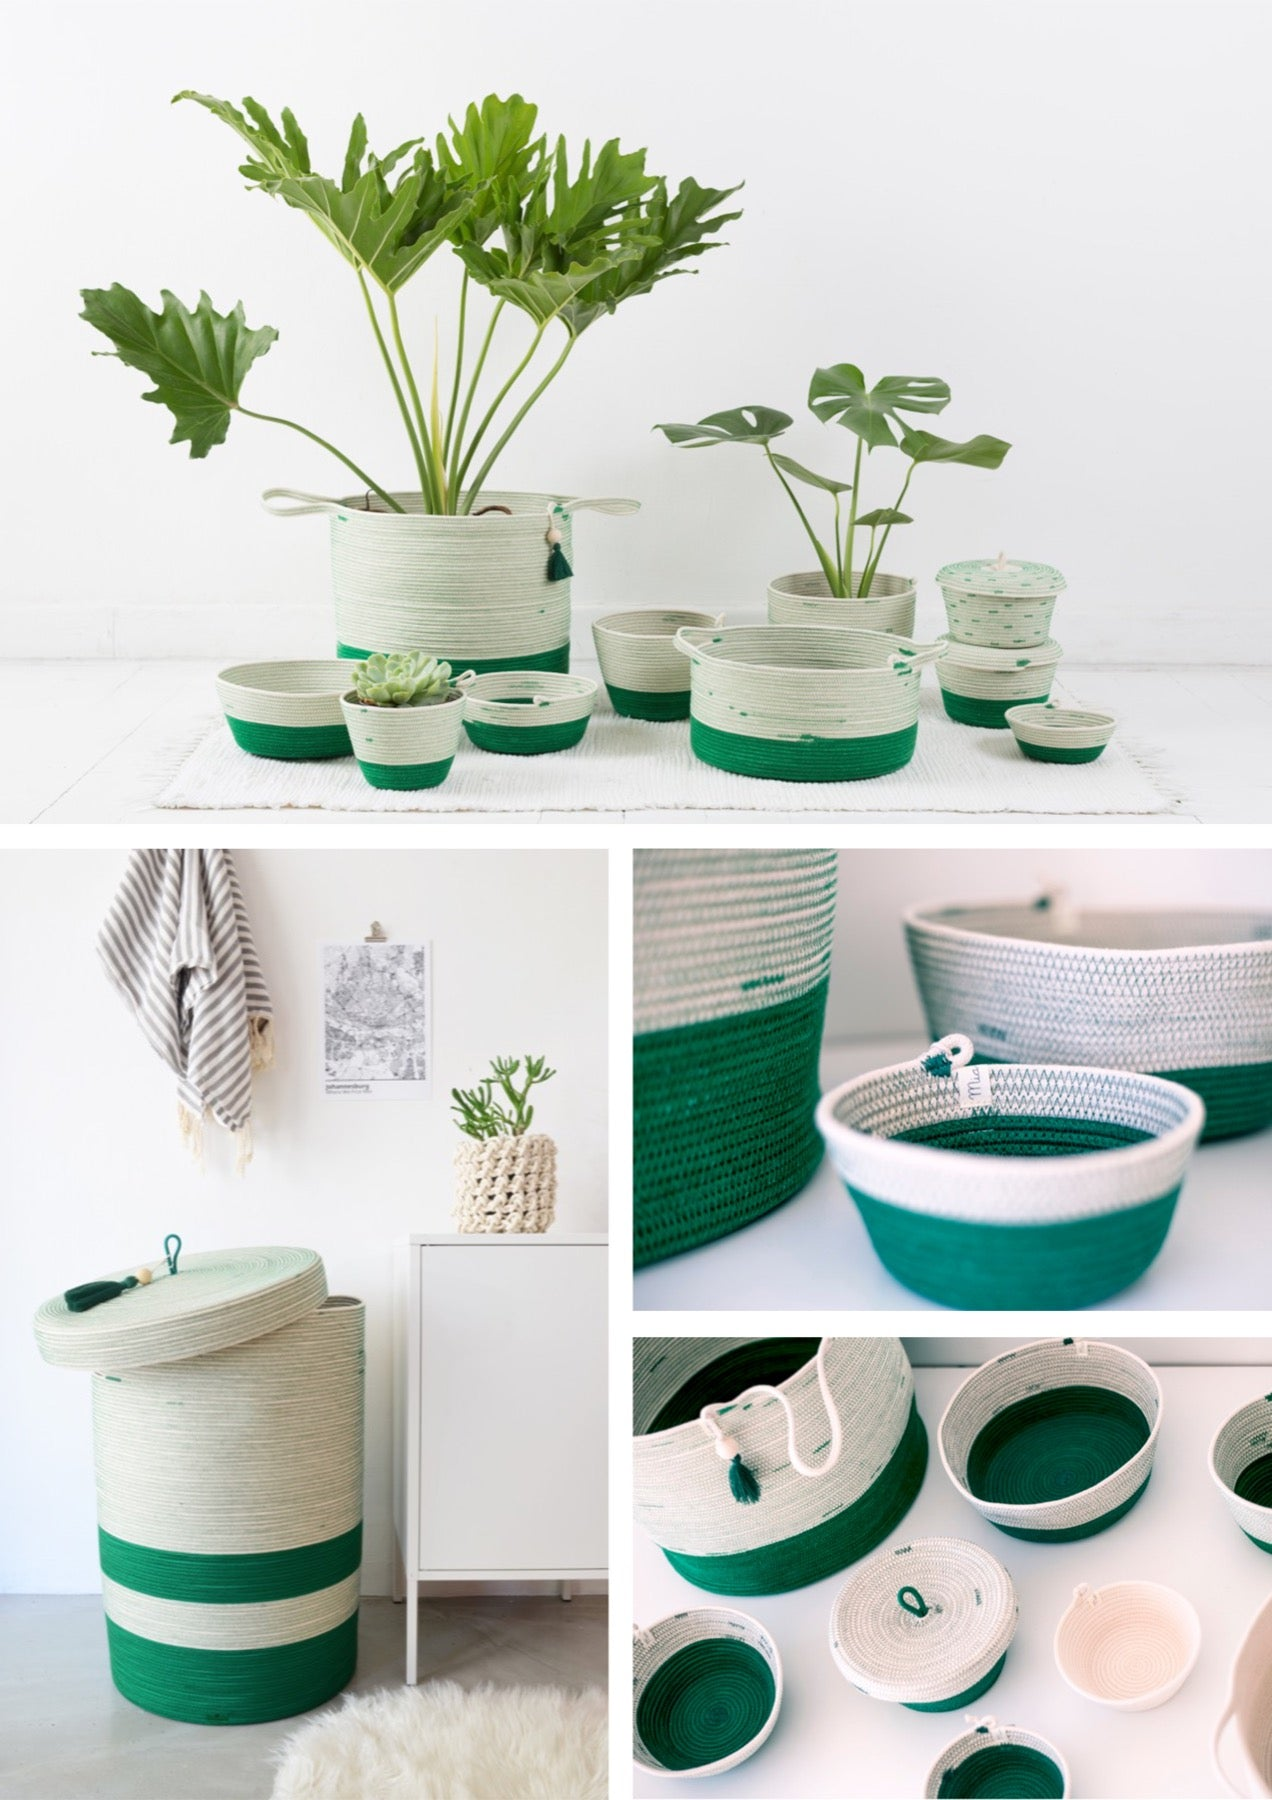 Green cotton rope baskets